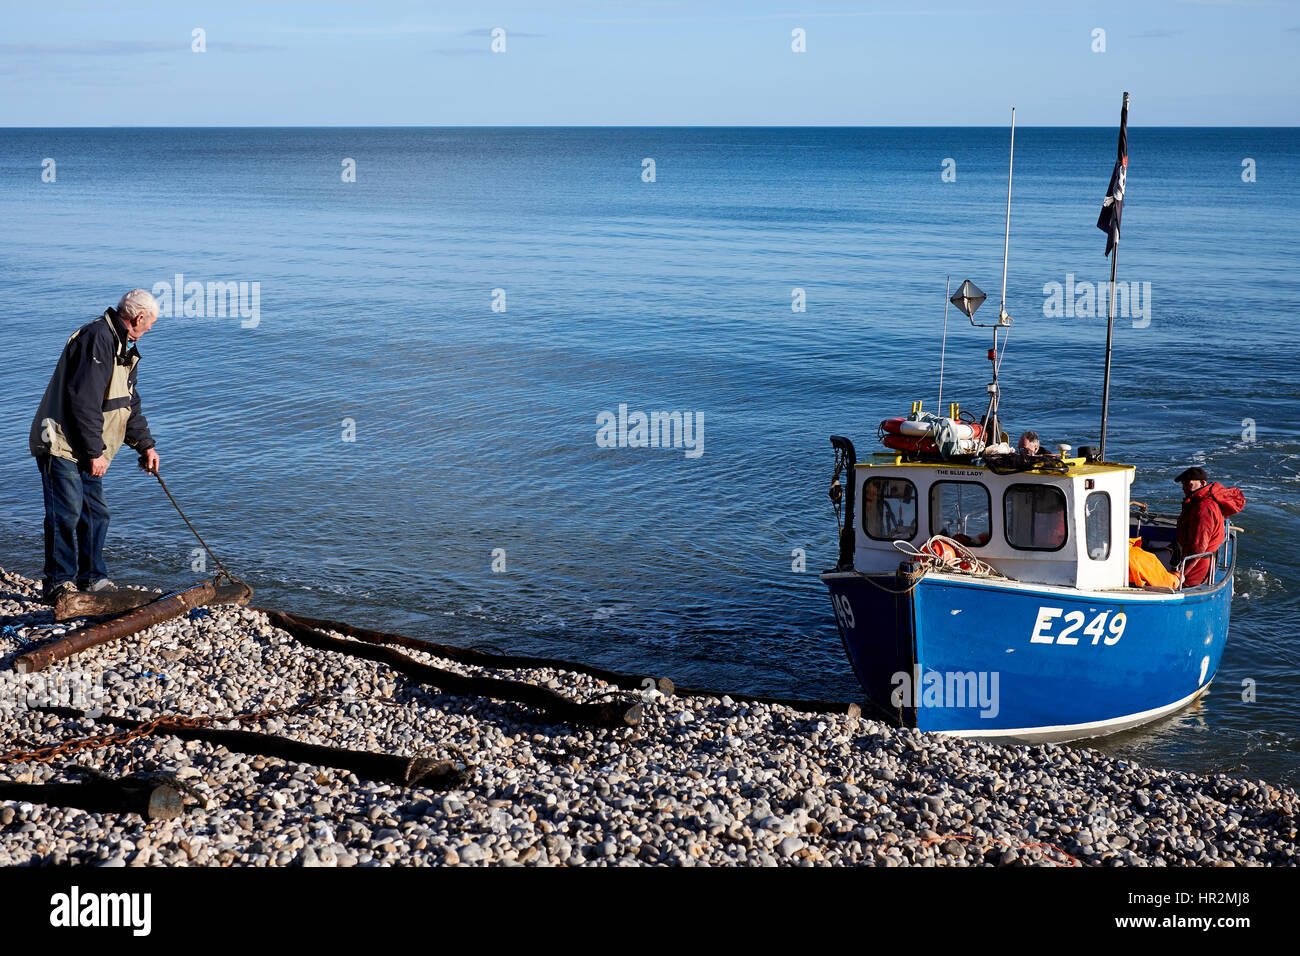 Hauling a fishing boat back on to the shore at Beer in Devon, U.K. Stock Photo